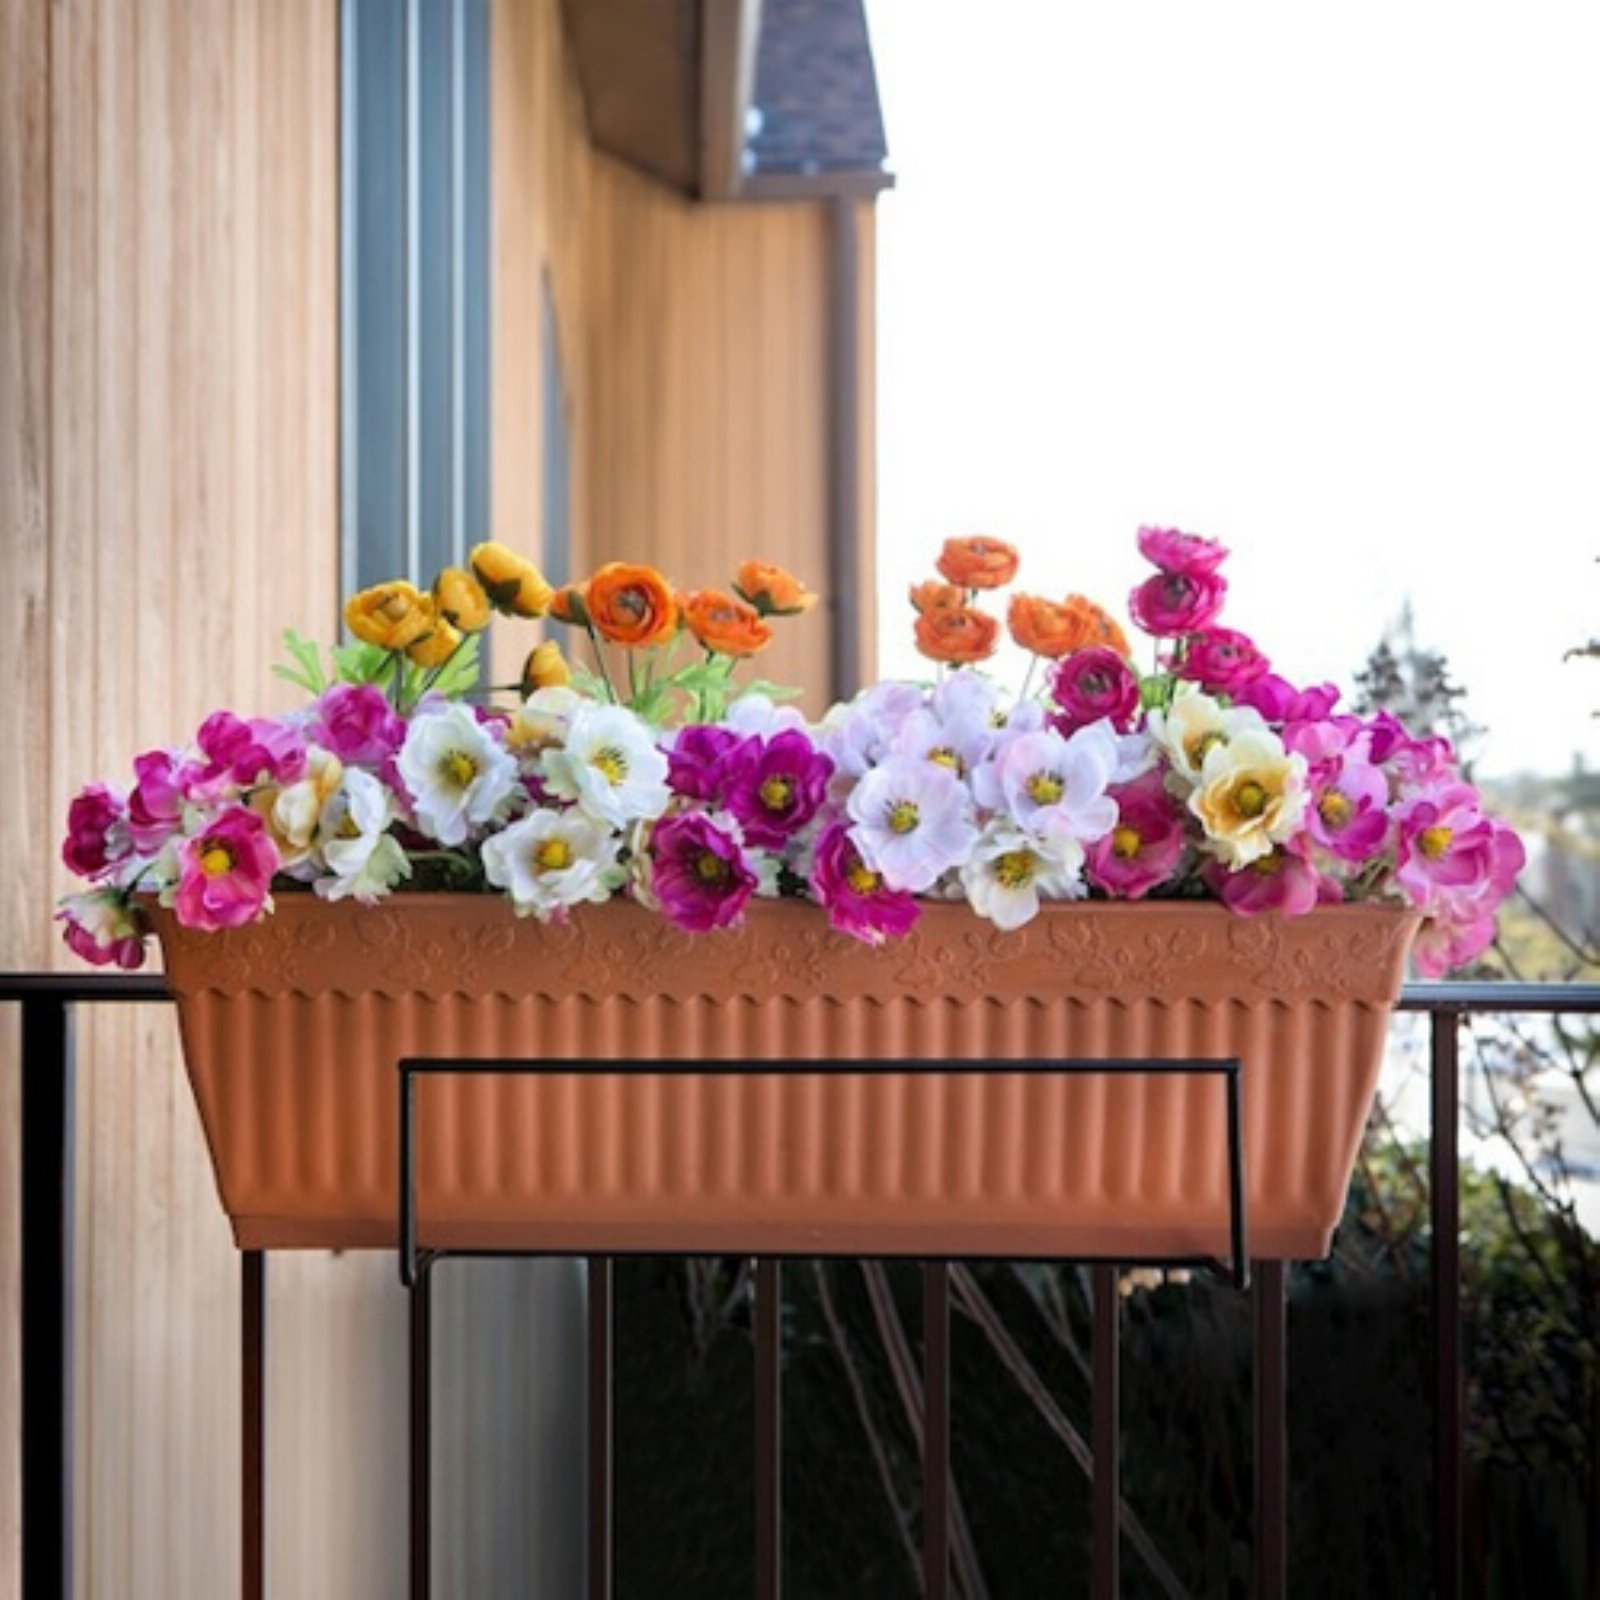 Sun Joe Deco Joe Flower Box Holder - White